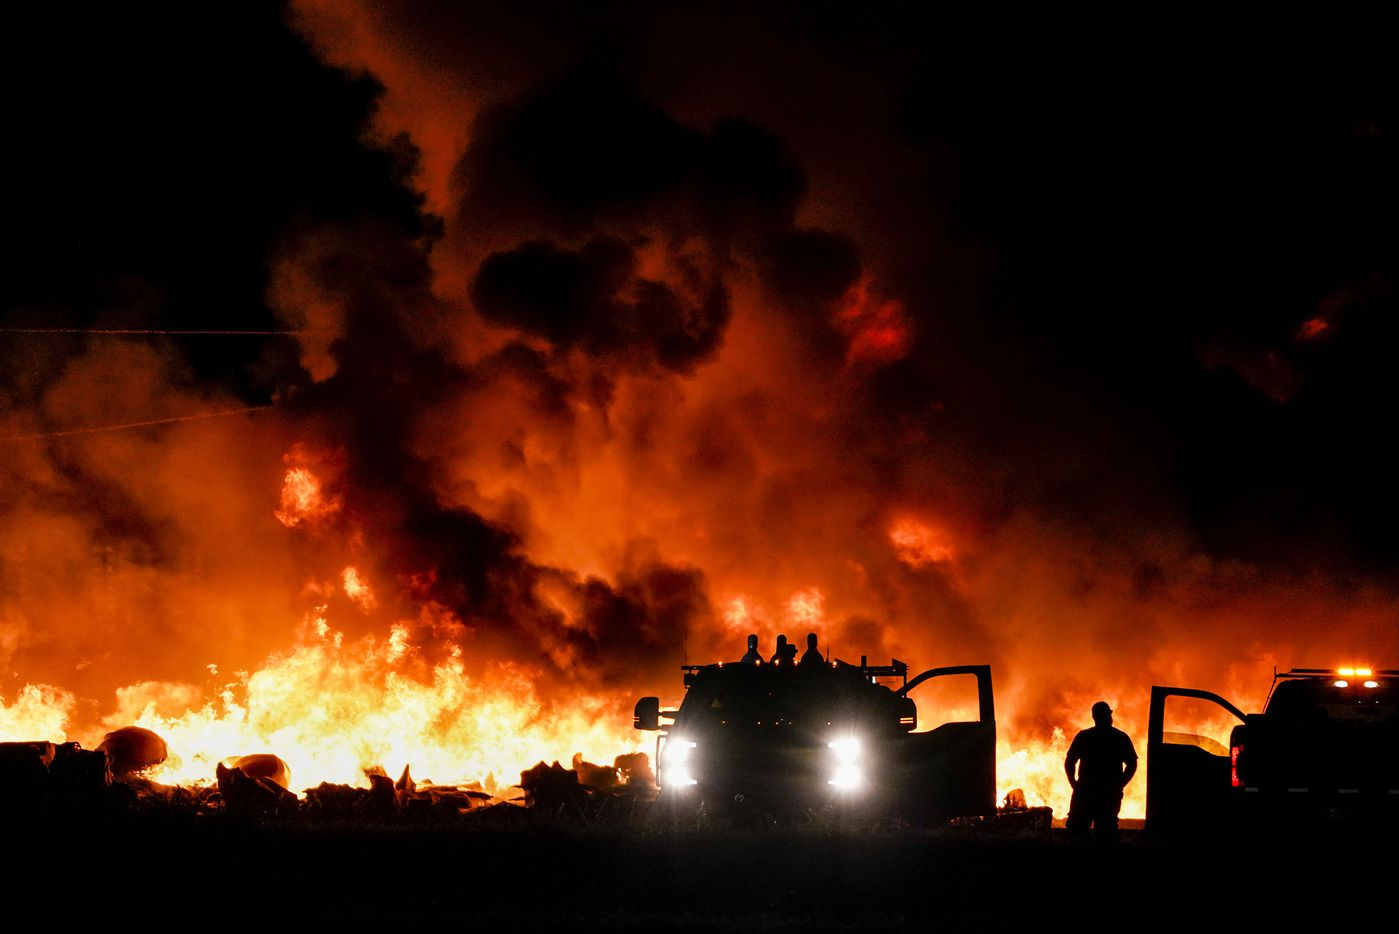 Fire crews battle a massive blaze in an industrial area of Grand Prairie in the early morning hours of Wednesday, Aug. 19, 2020.